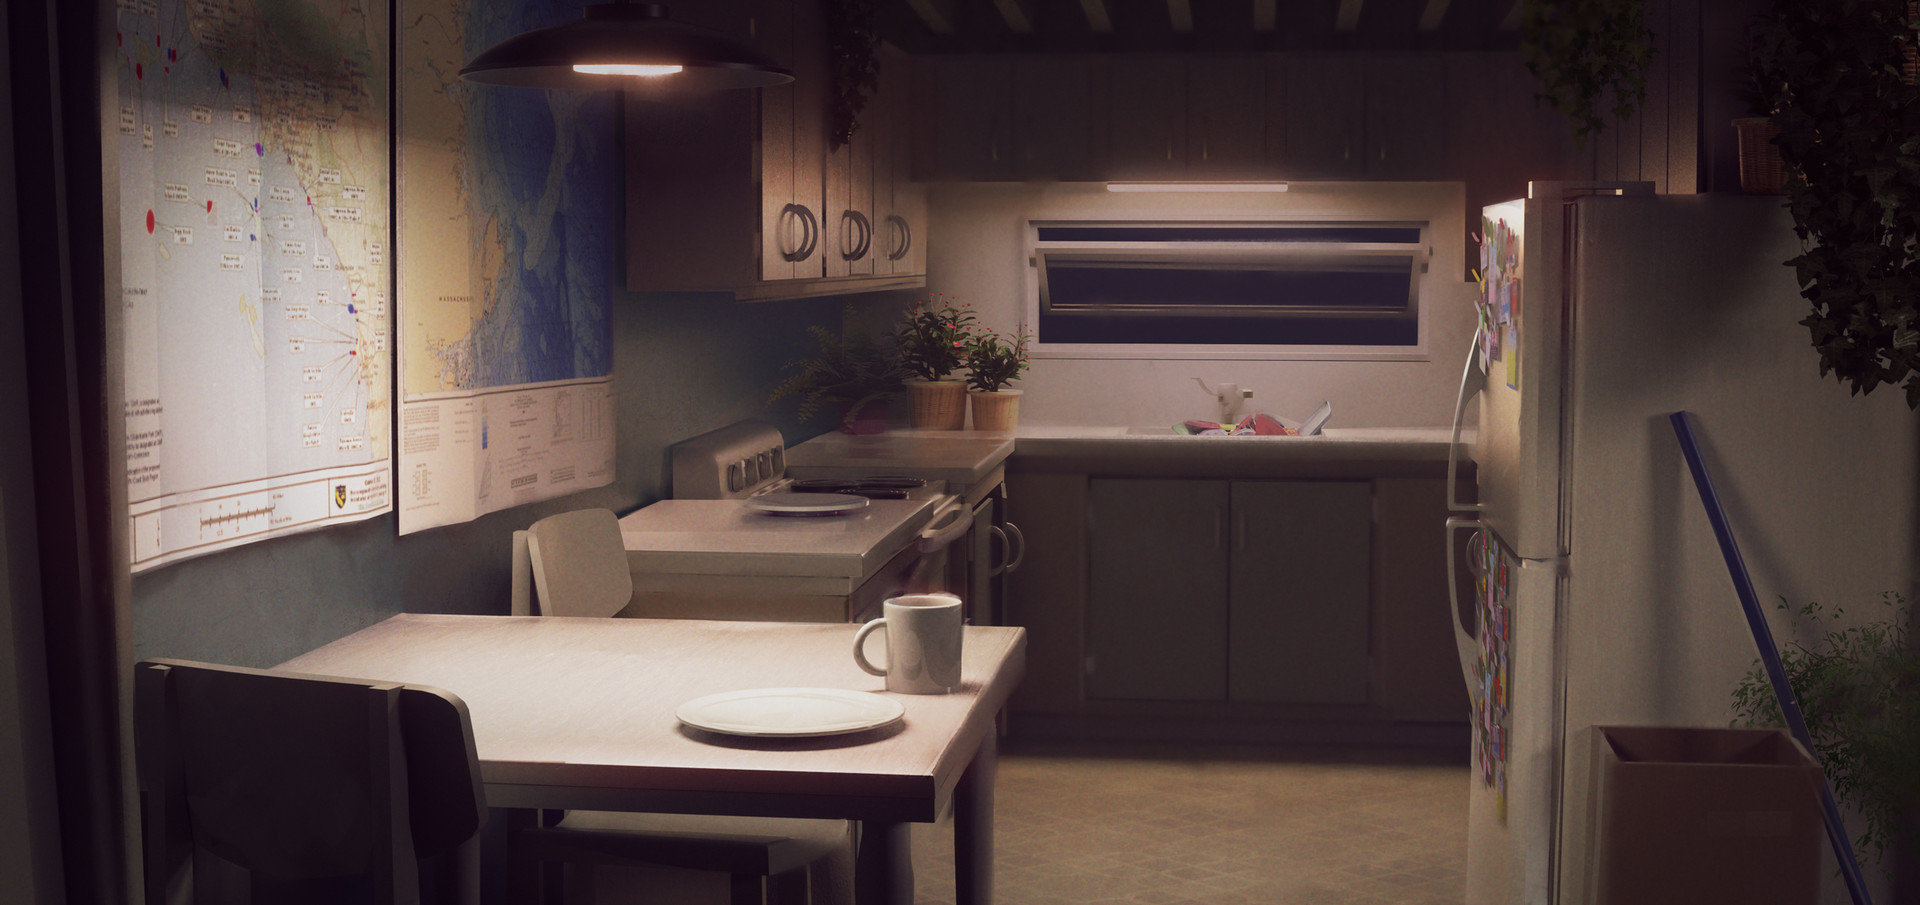 Kitchen at night